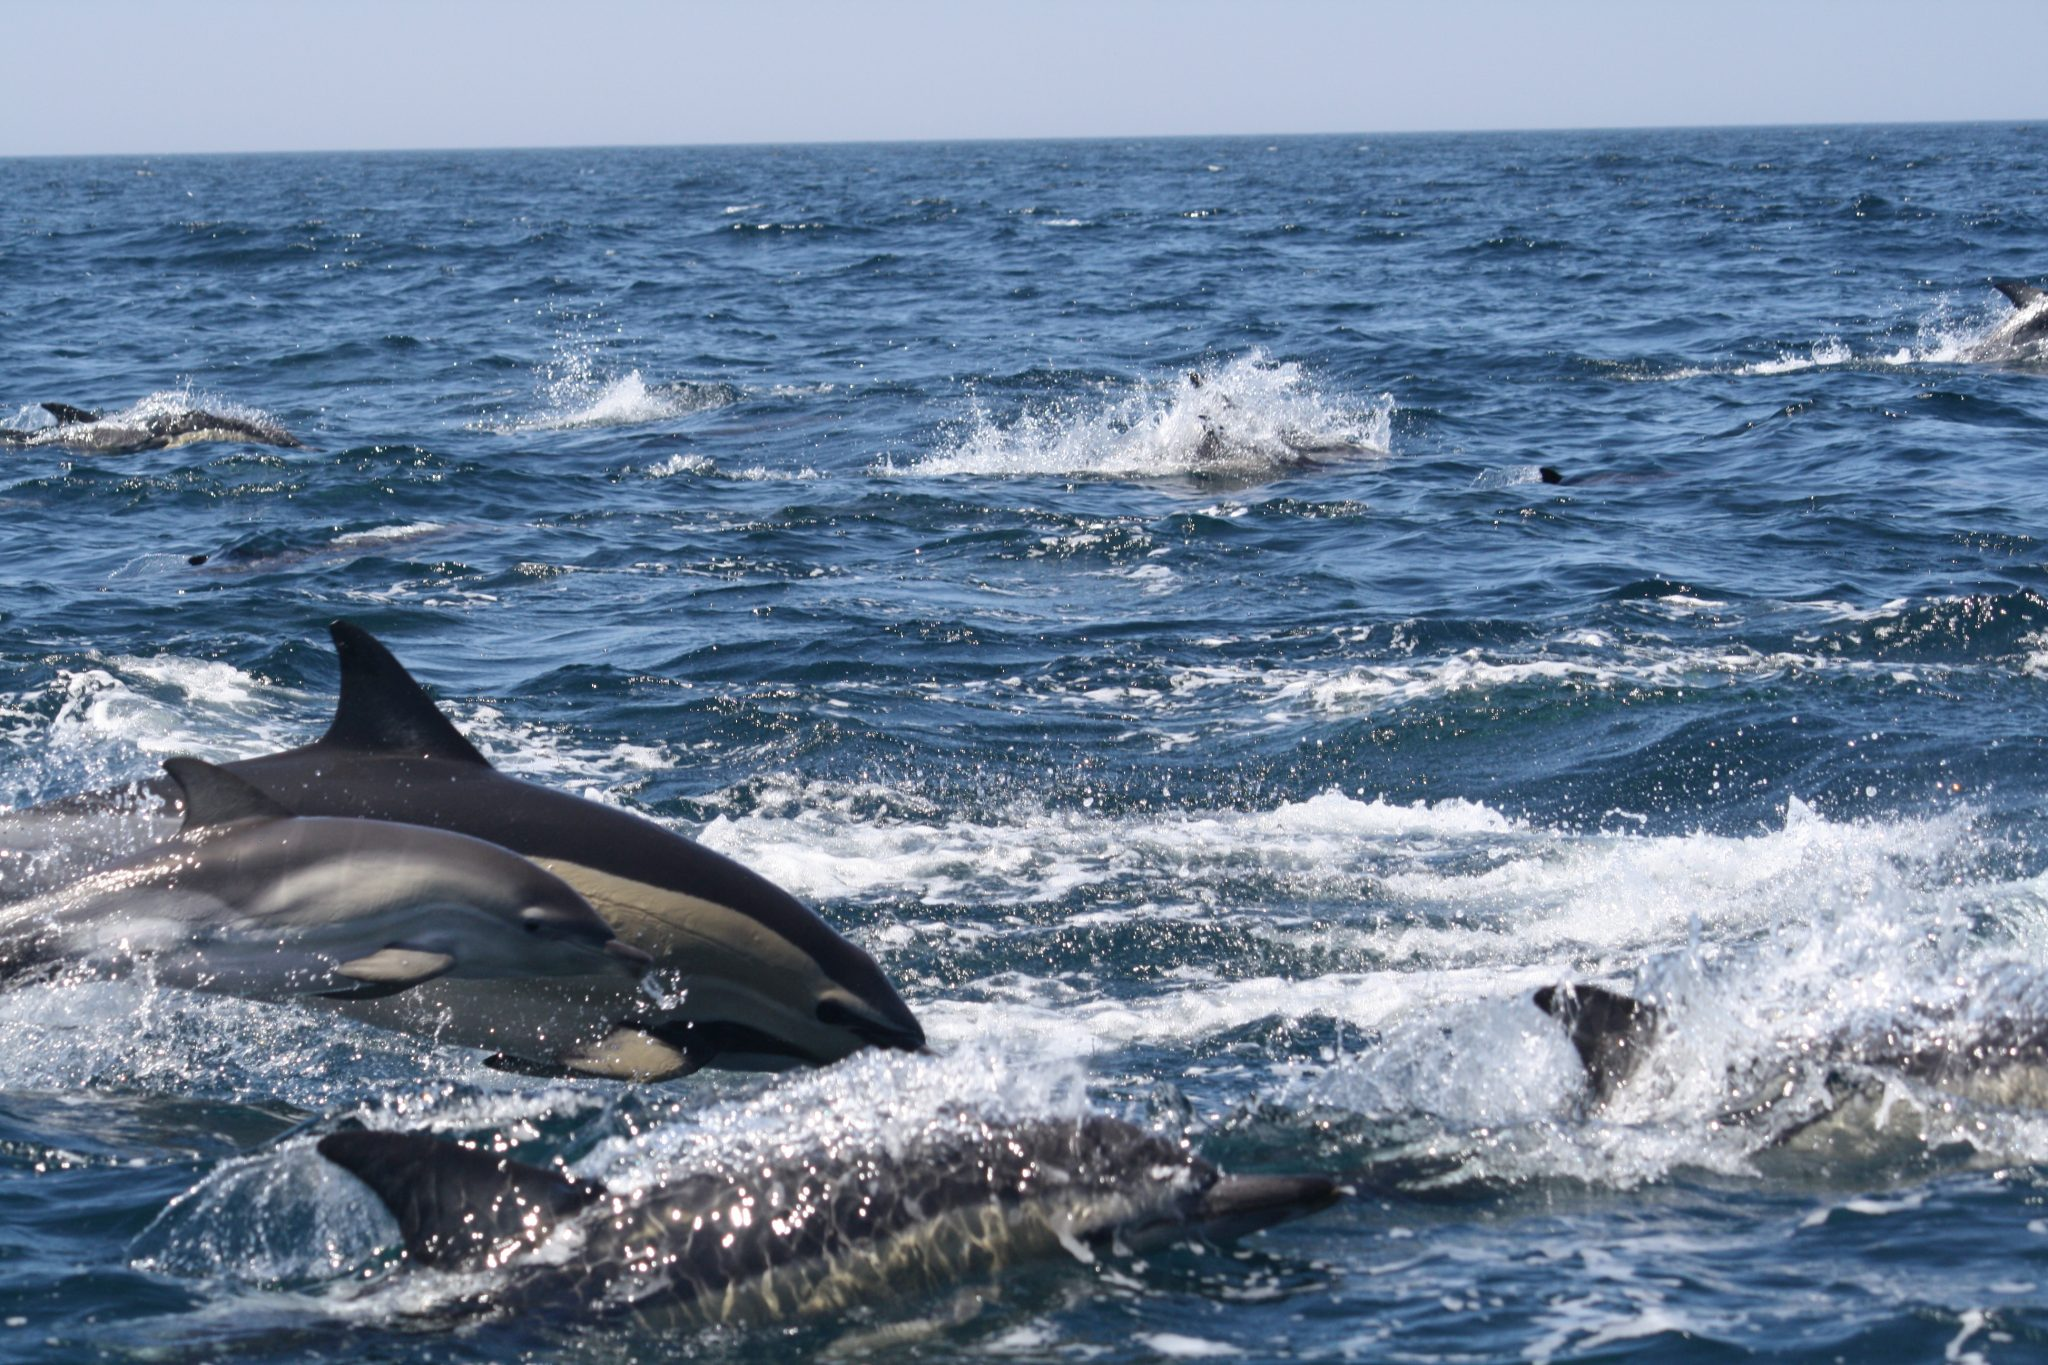 Dolphin watching tour from Sagres - SeaBookings